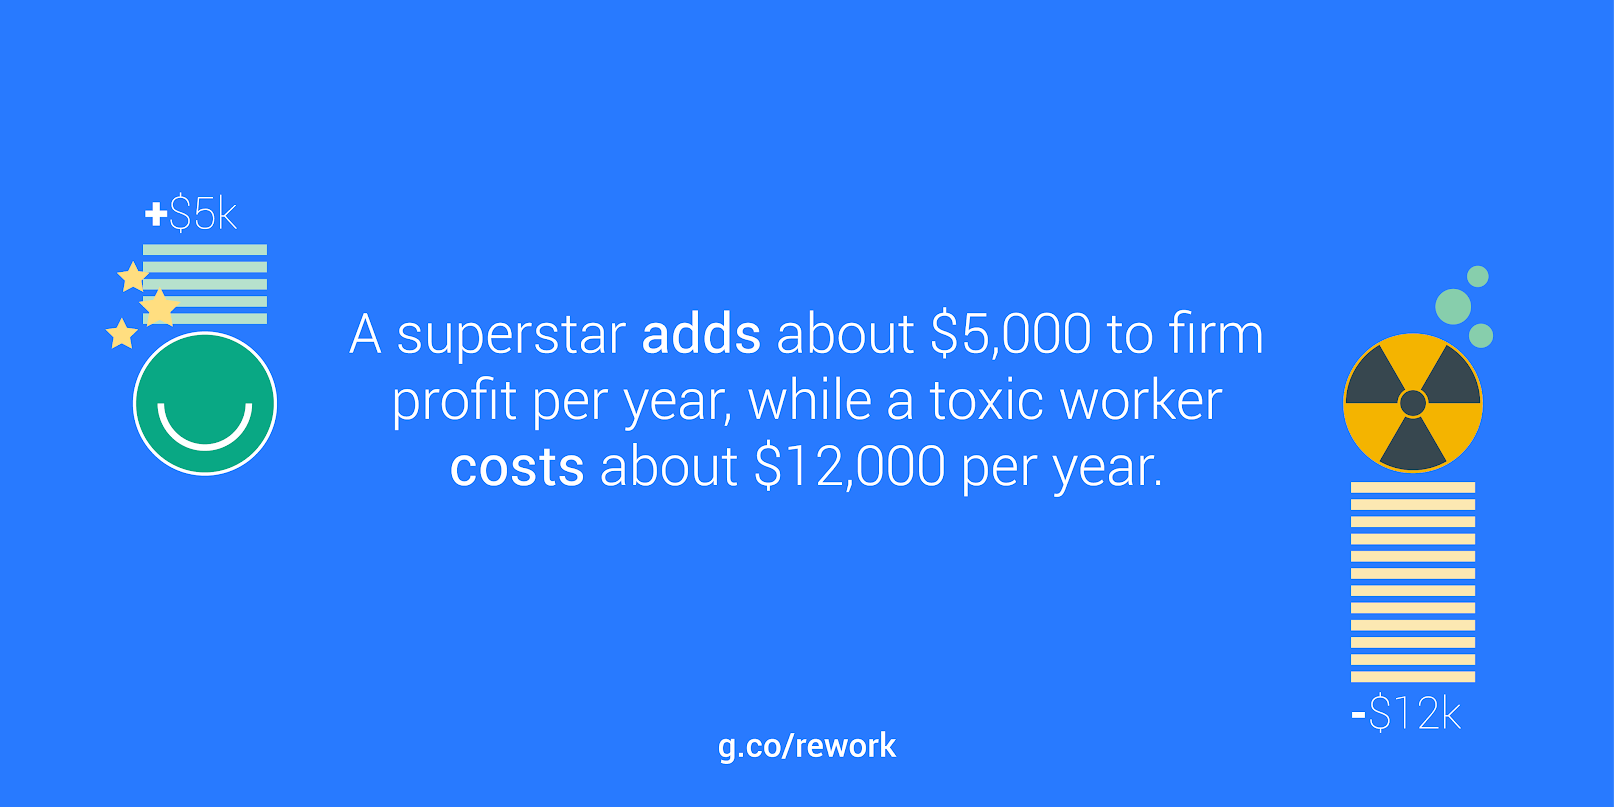 Just how toxic are toxic employees?